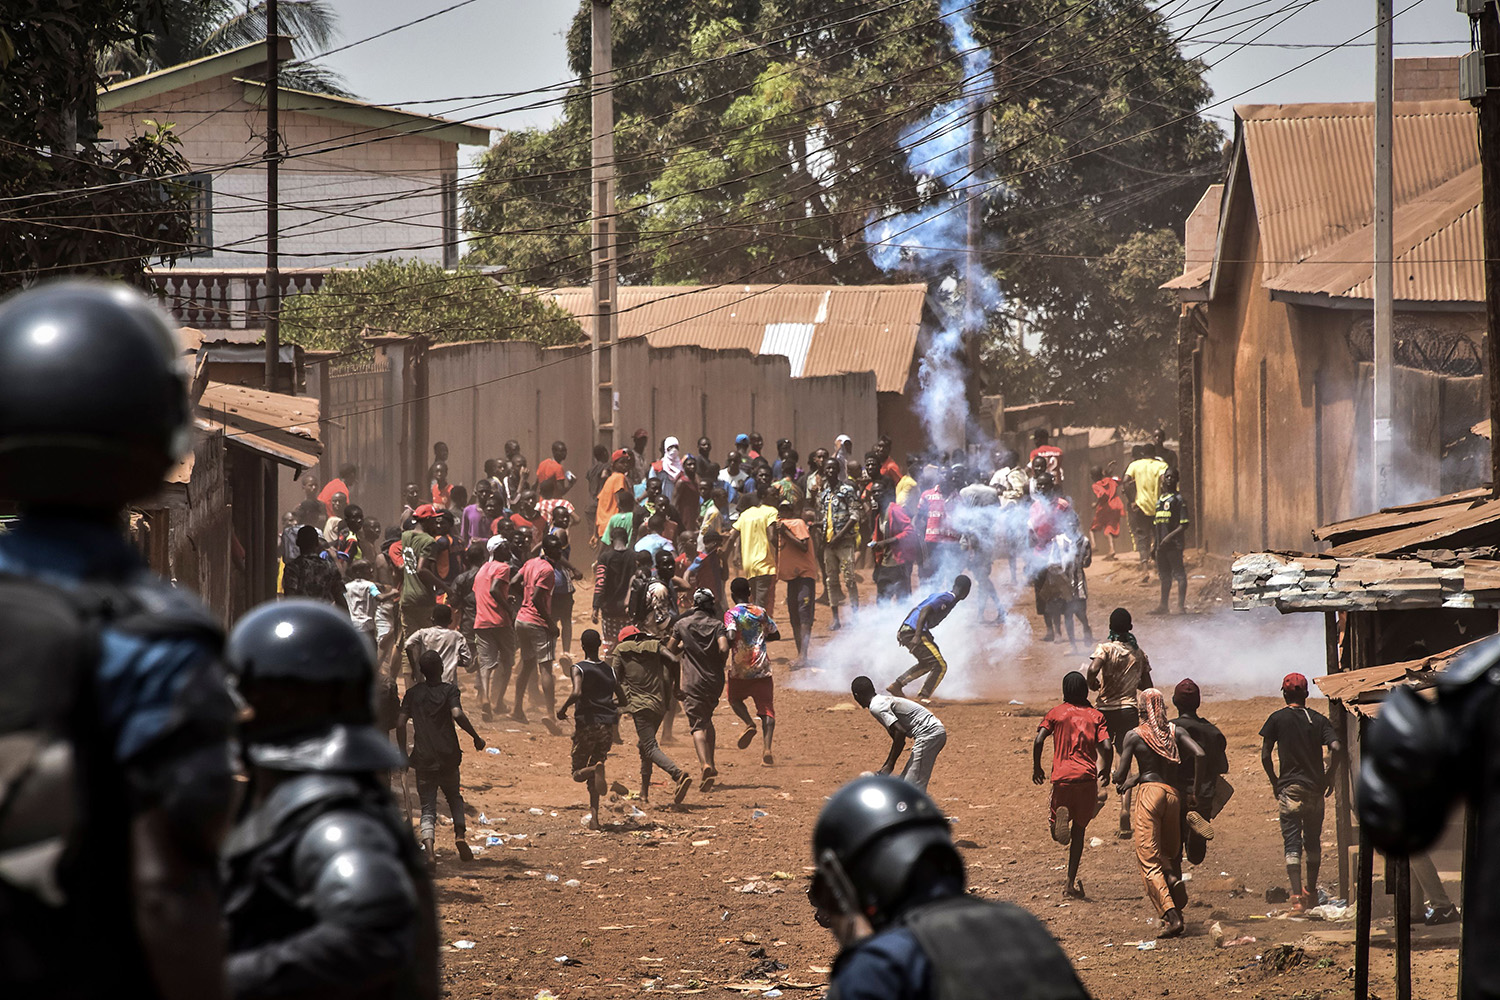 Protesters react as police throw rocks and fire tear gas in the opposition stronghold of Wanindara, a northern suburb of Conakry, Guinea, on Feb. 27. Guinea held a referendum on March 1 on whether to change the constitution to allow the president to run for a third term. CELLOU BINANI/AFP via Getty Images